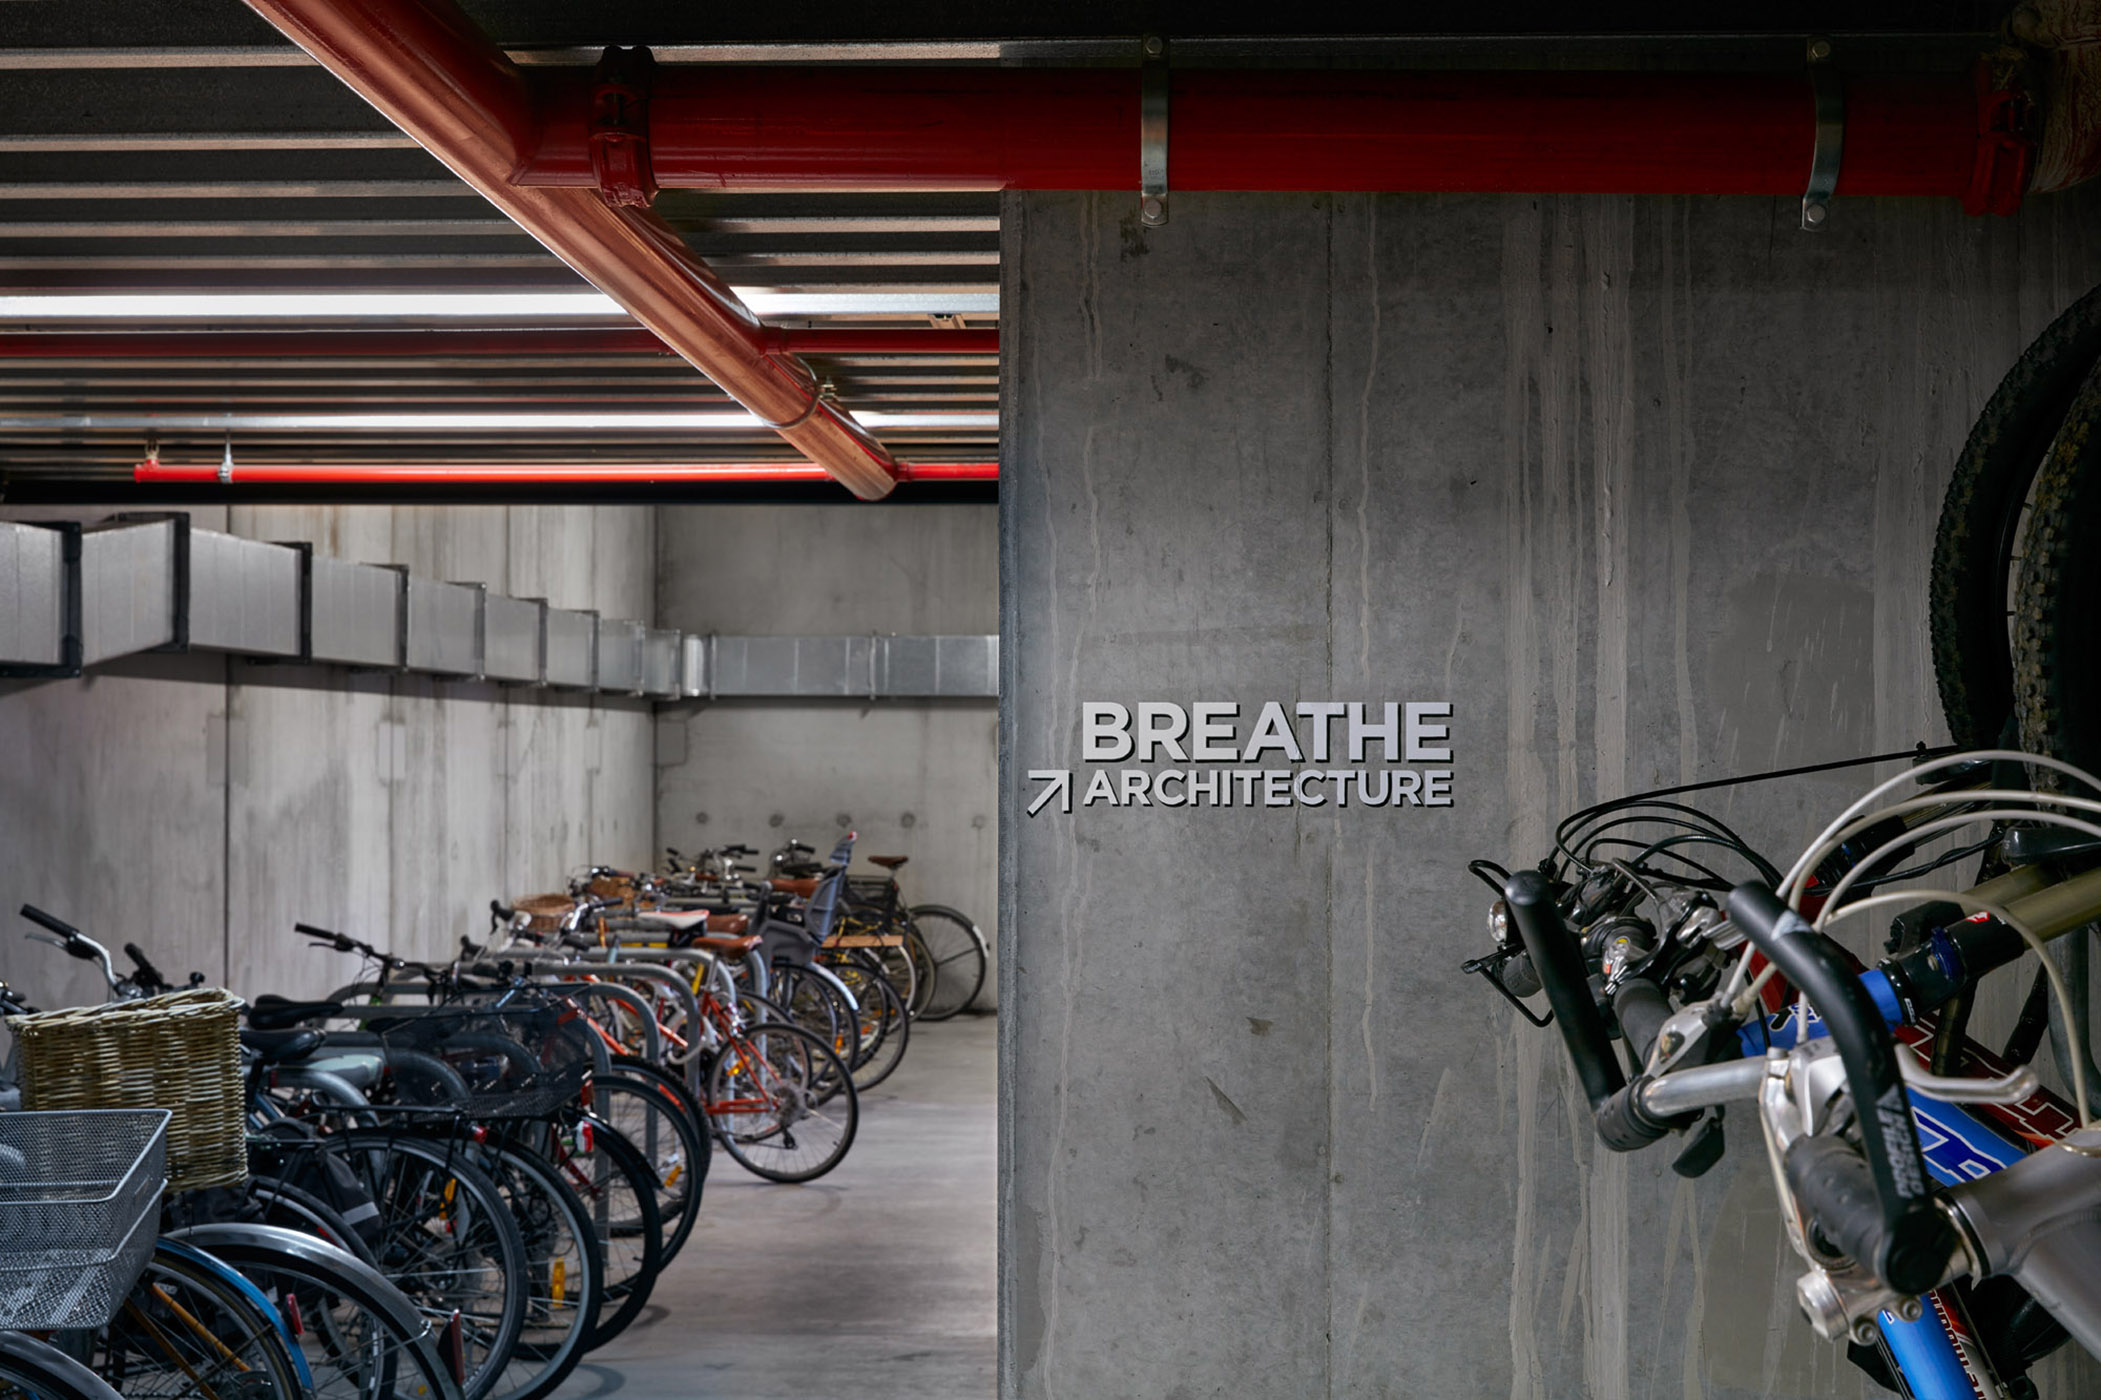 A large basement space with lots of bicycles parked next to each other. A handwritten sign reads Breathe Architecture.